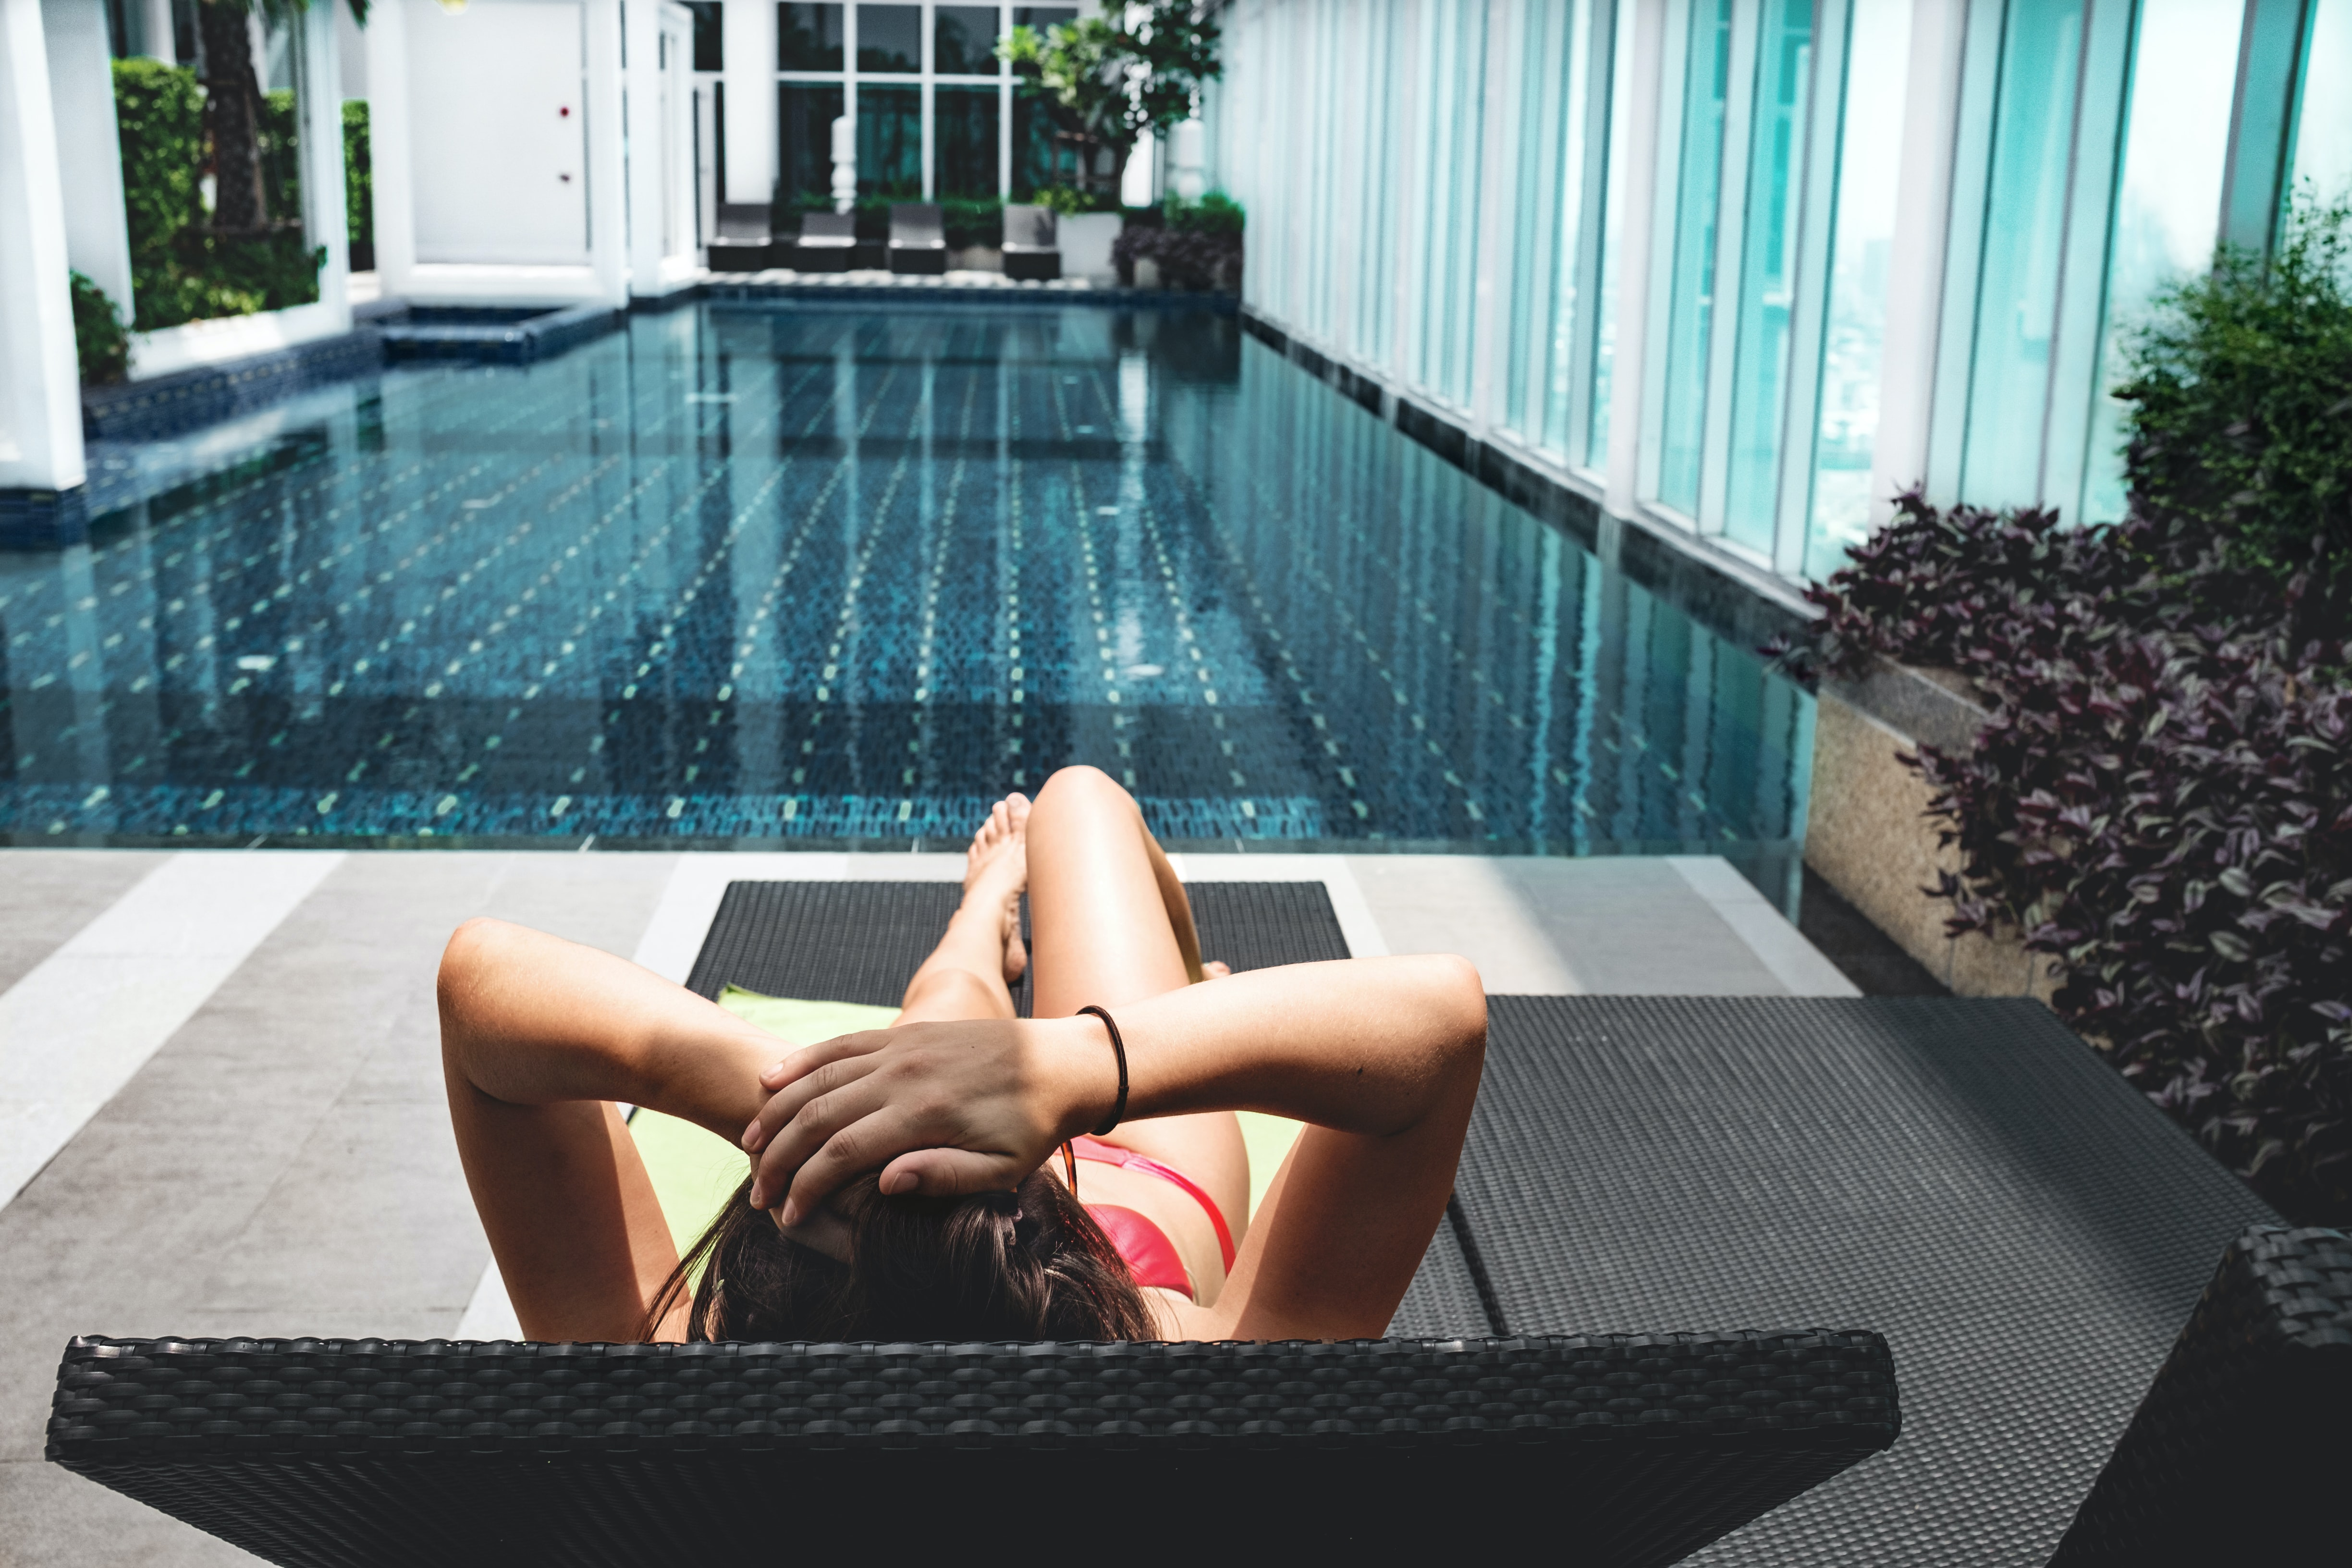 A woman in a bikini lays on a lounge chair facing a pool